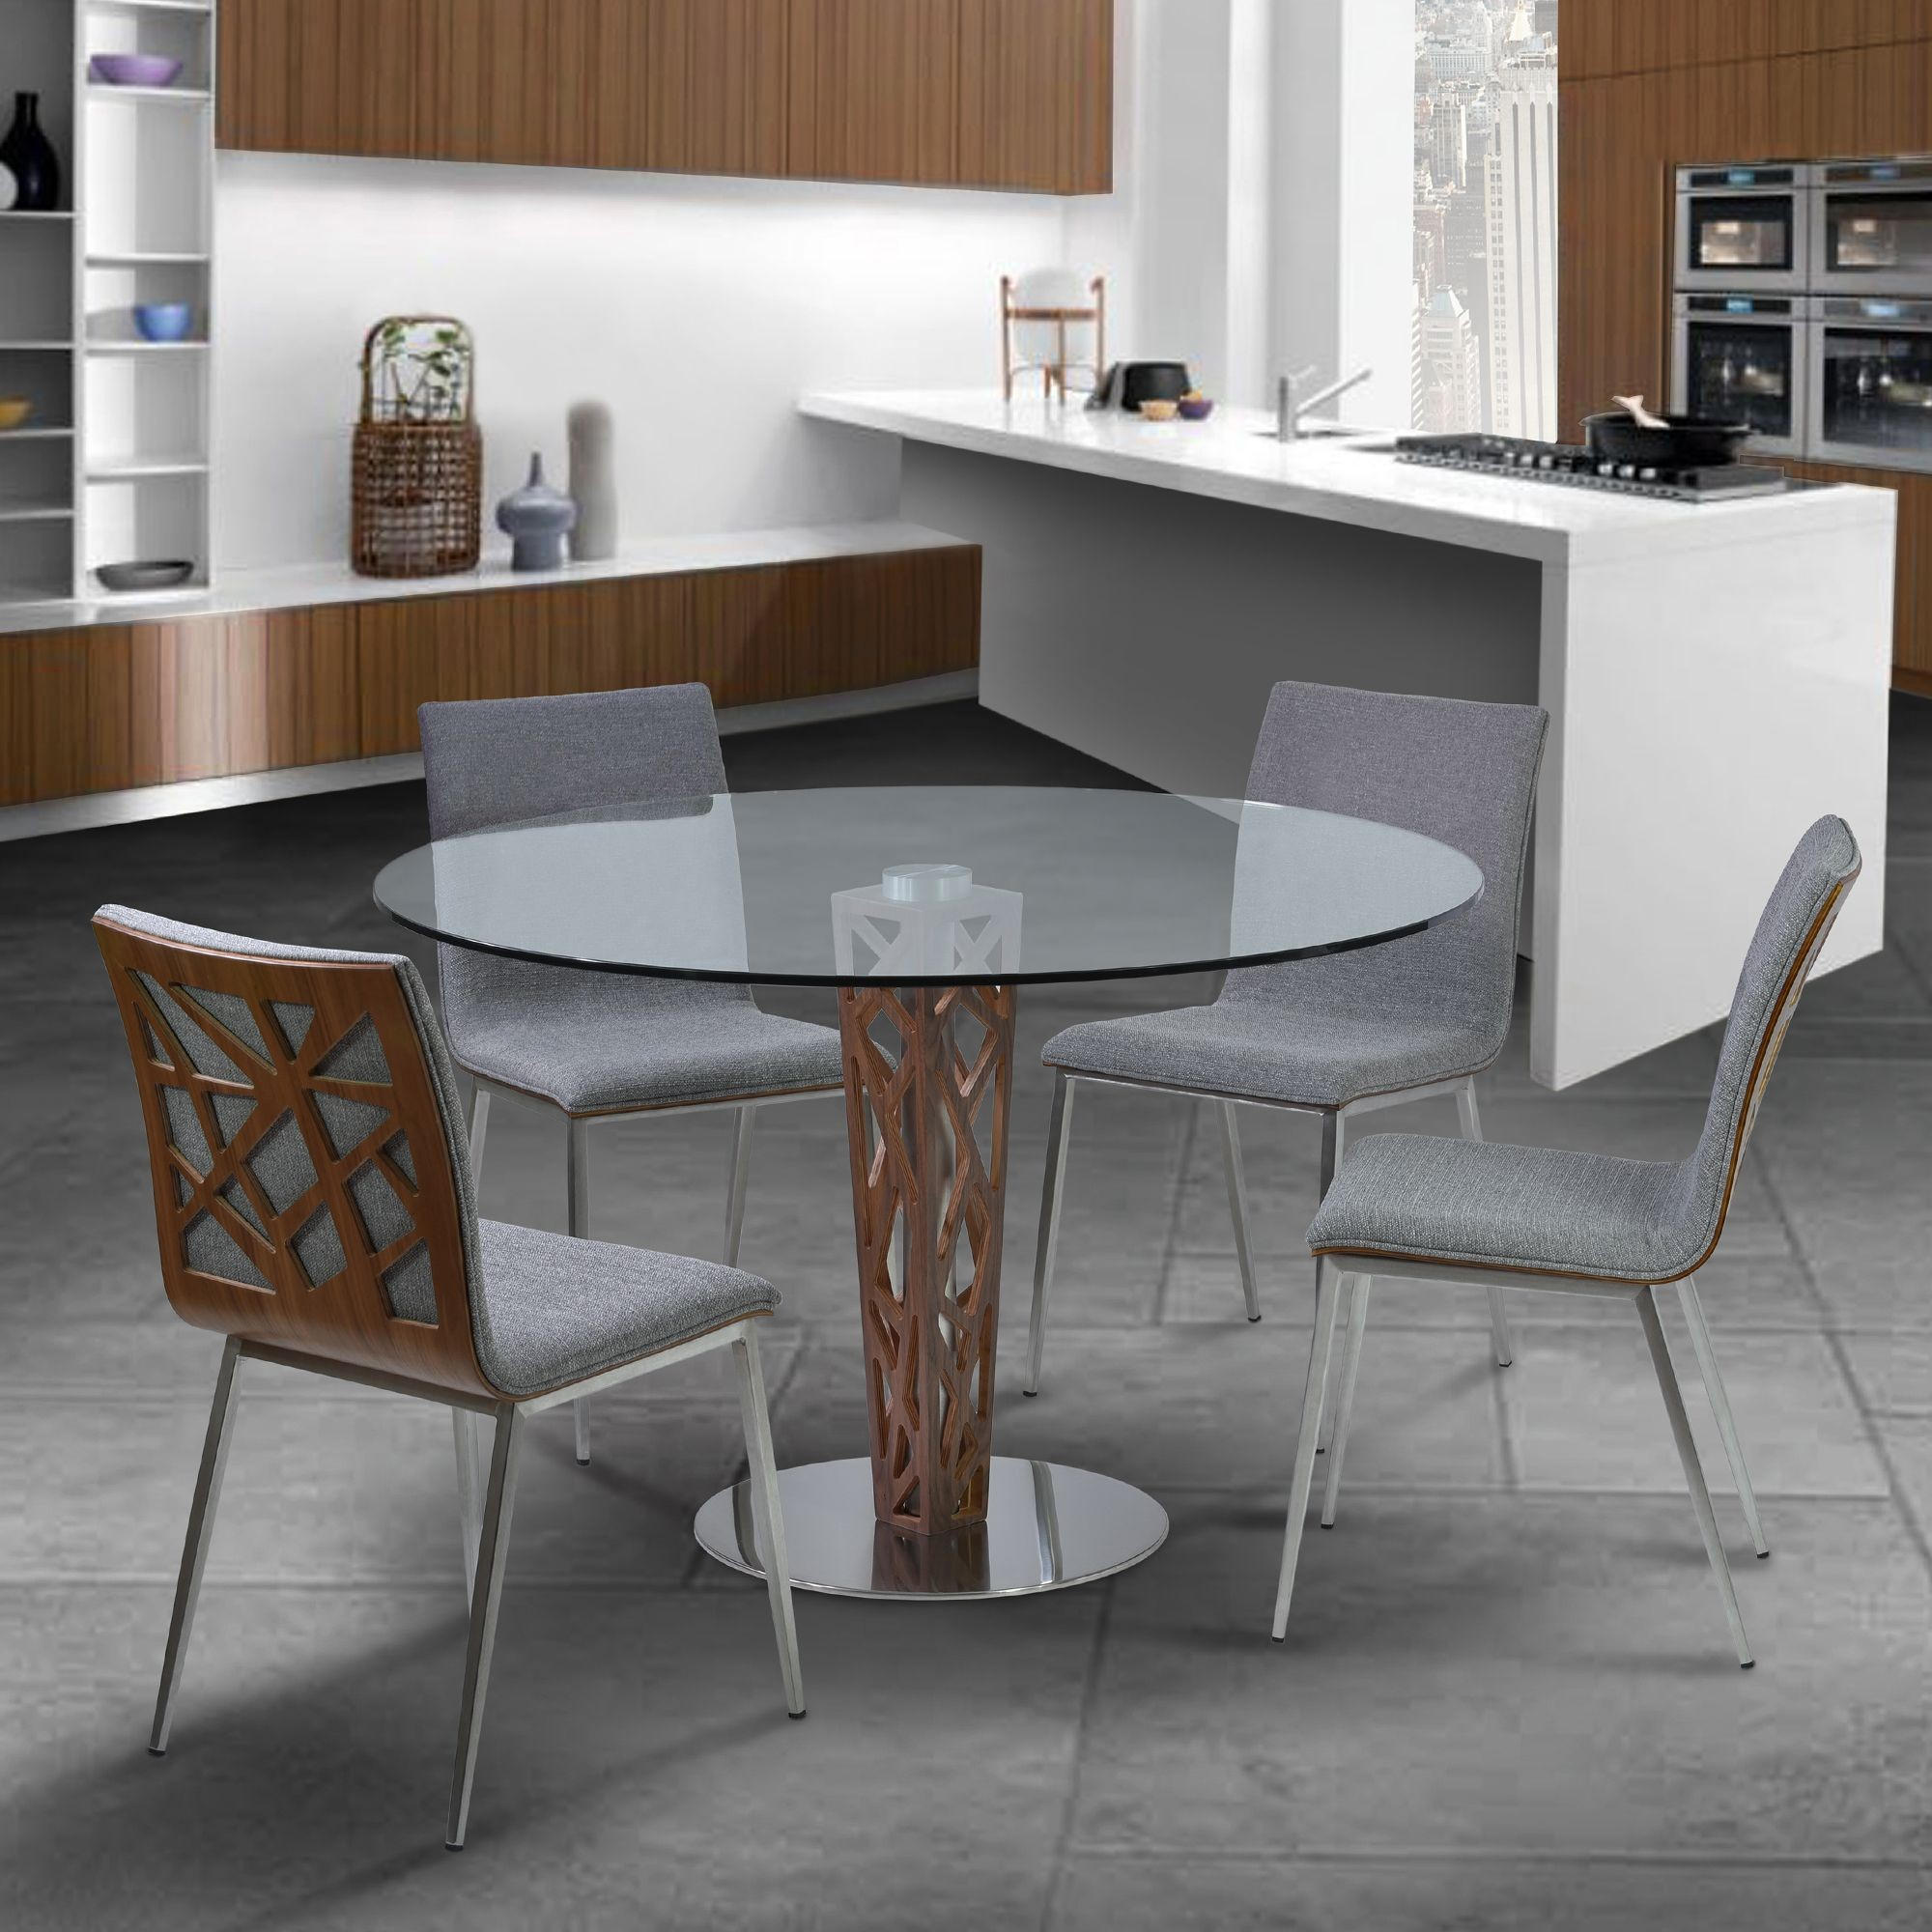 crystal 48 clear tempered glass top round dining table lccrditogr armen living. Black Bedroom Furniture Sets. Home Design Ideas